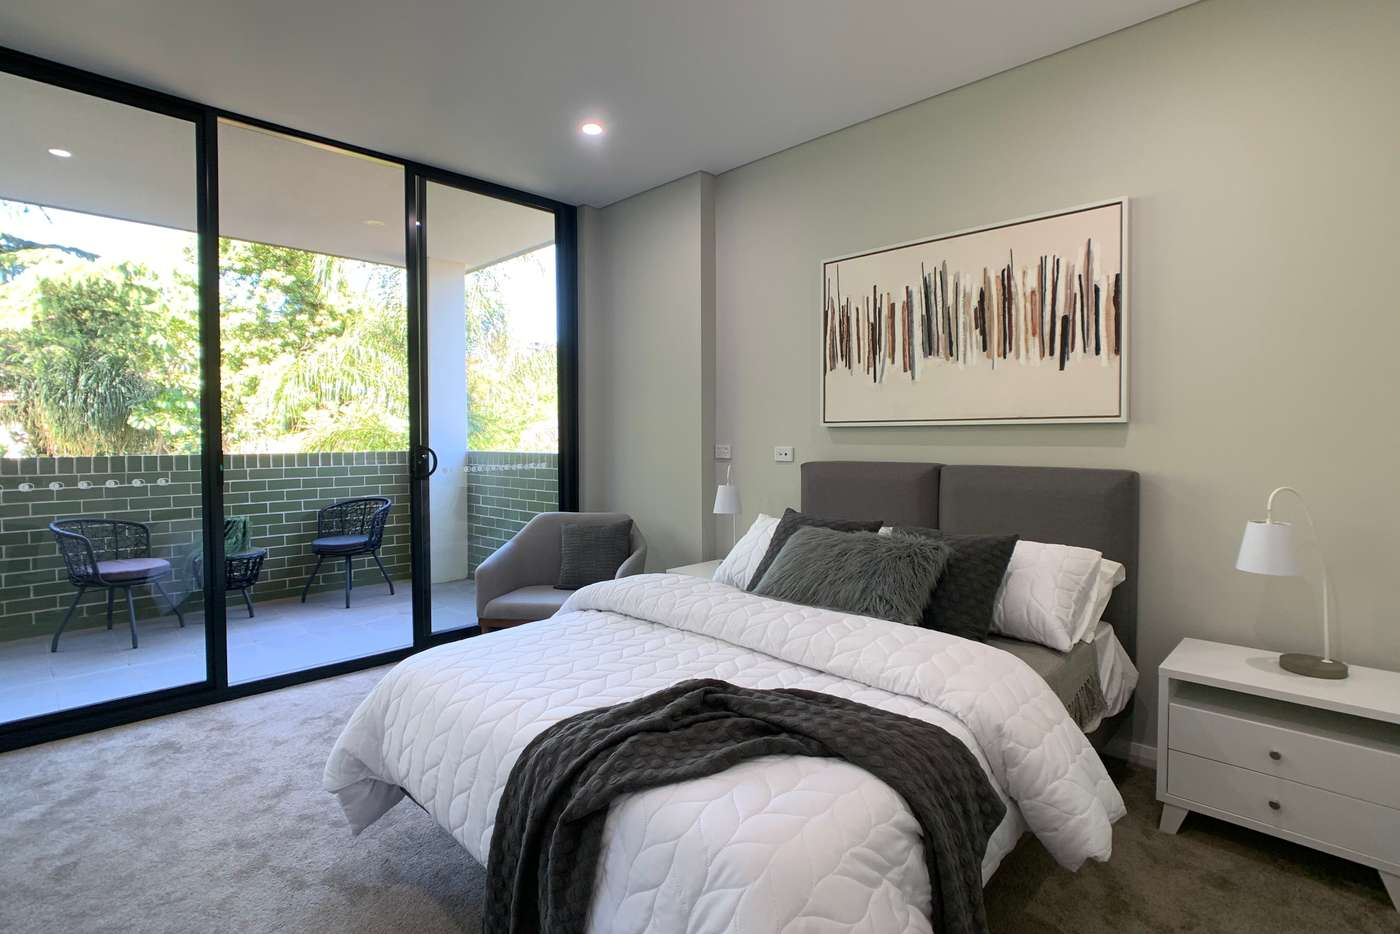 Fifth view of Homely apartment listing, 111/30 Donald Street, Carlingford NSW 2118